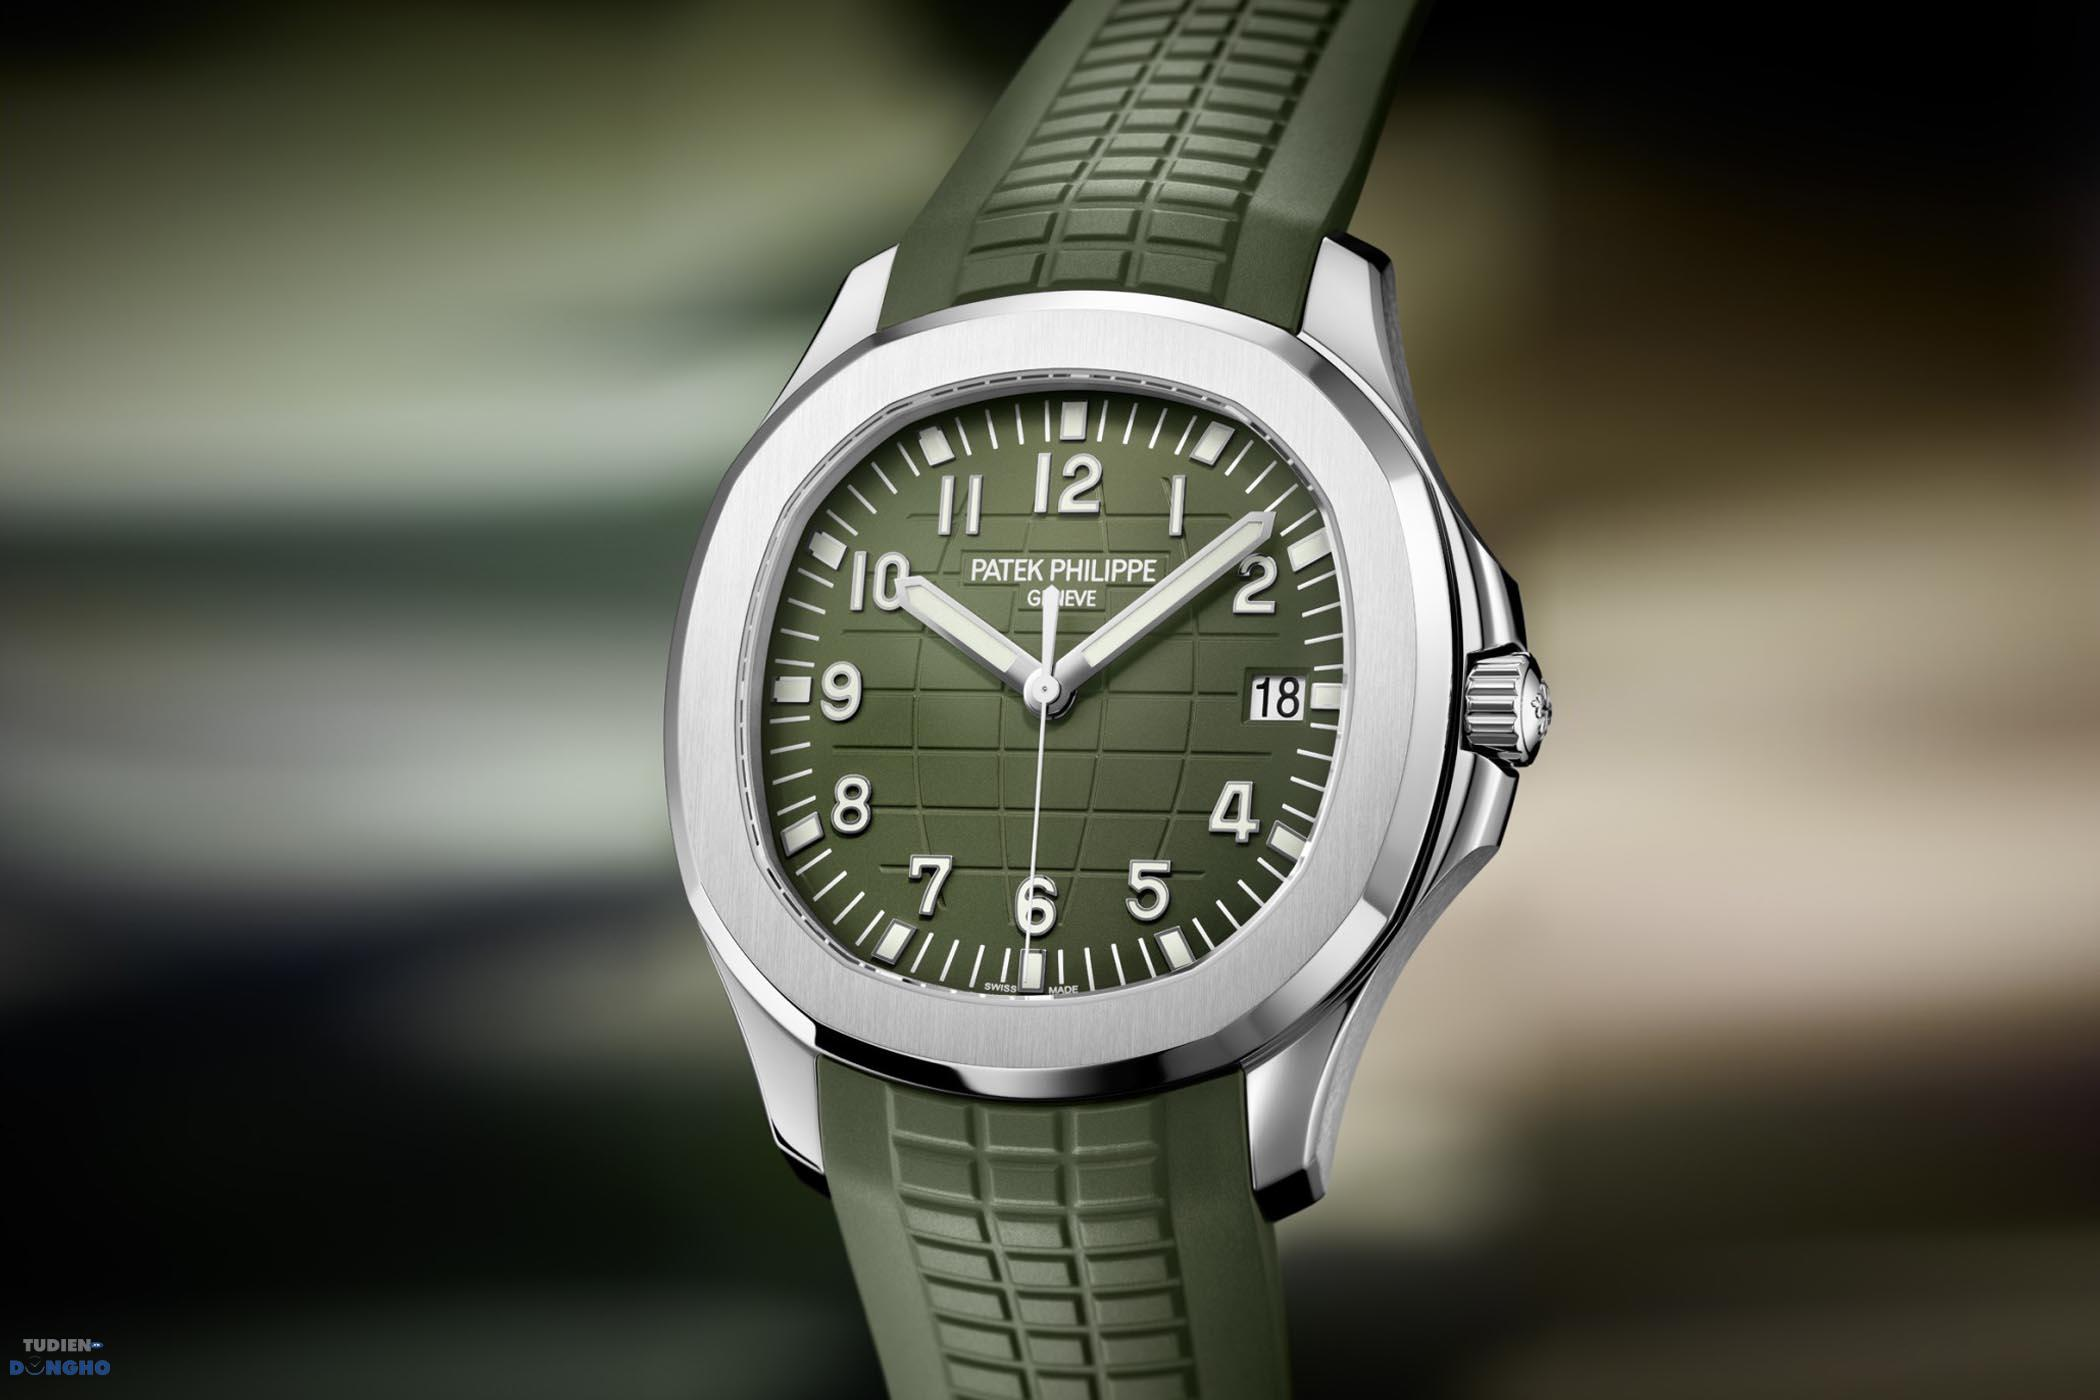 Patek Philippe Aquanaut Jumbo White Gold 5168G now in Khaki Green